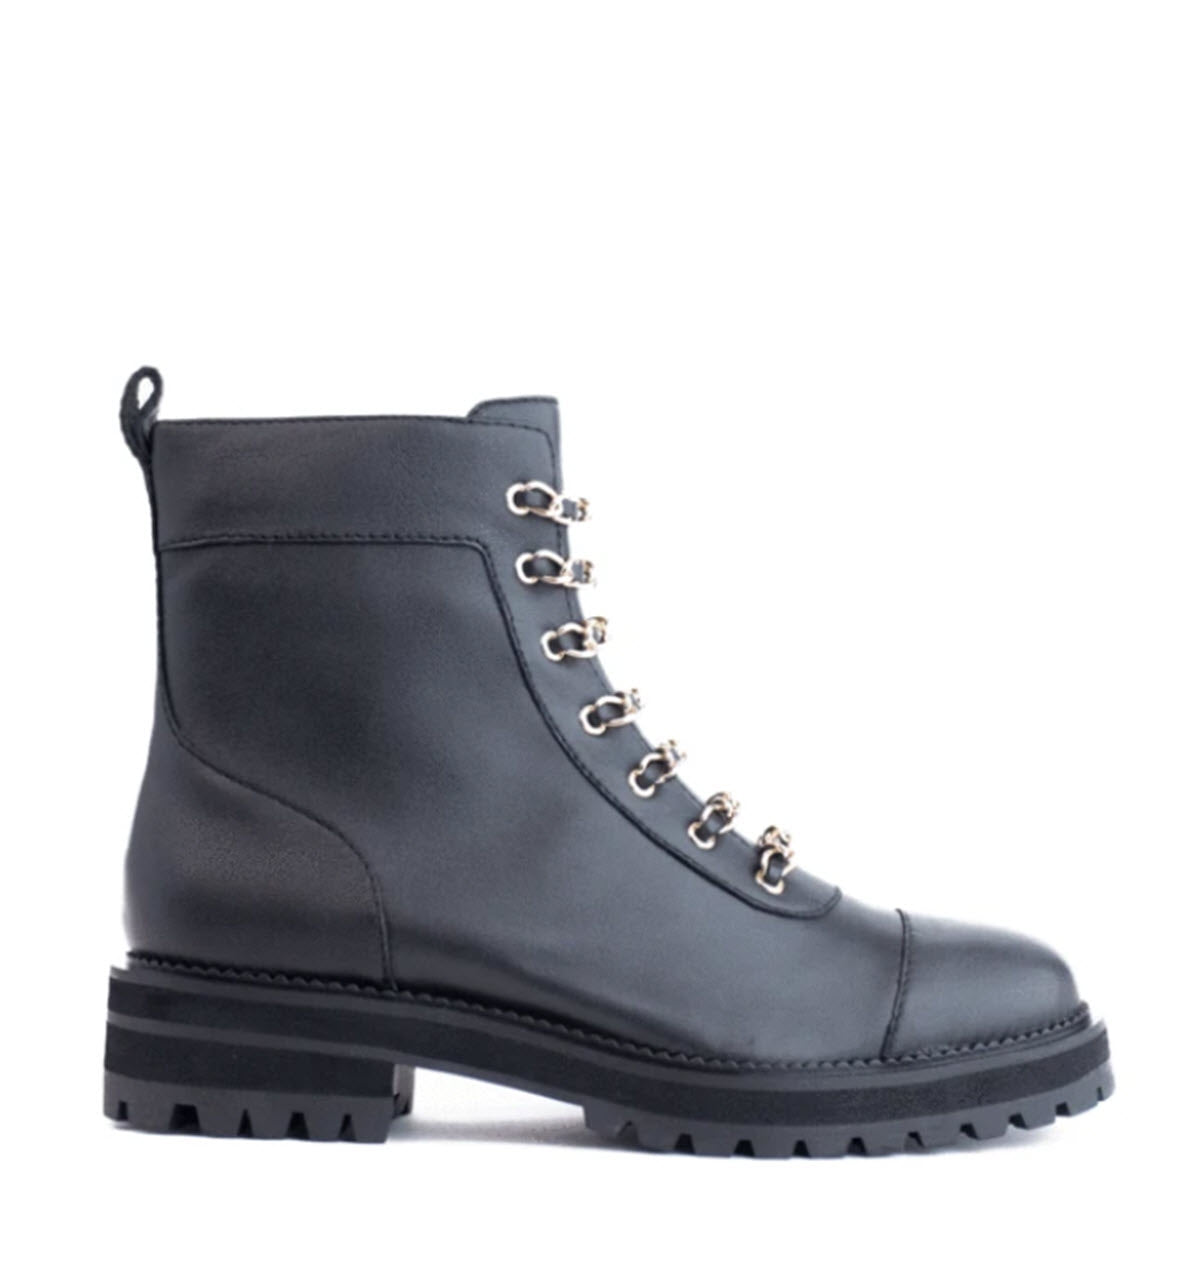 The Chain Lace Combat Boot in Black